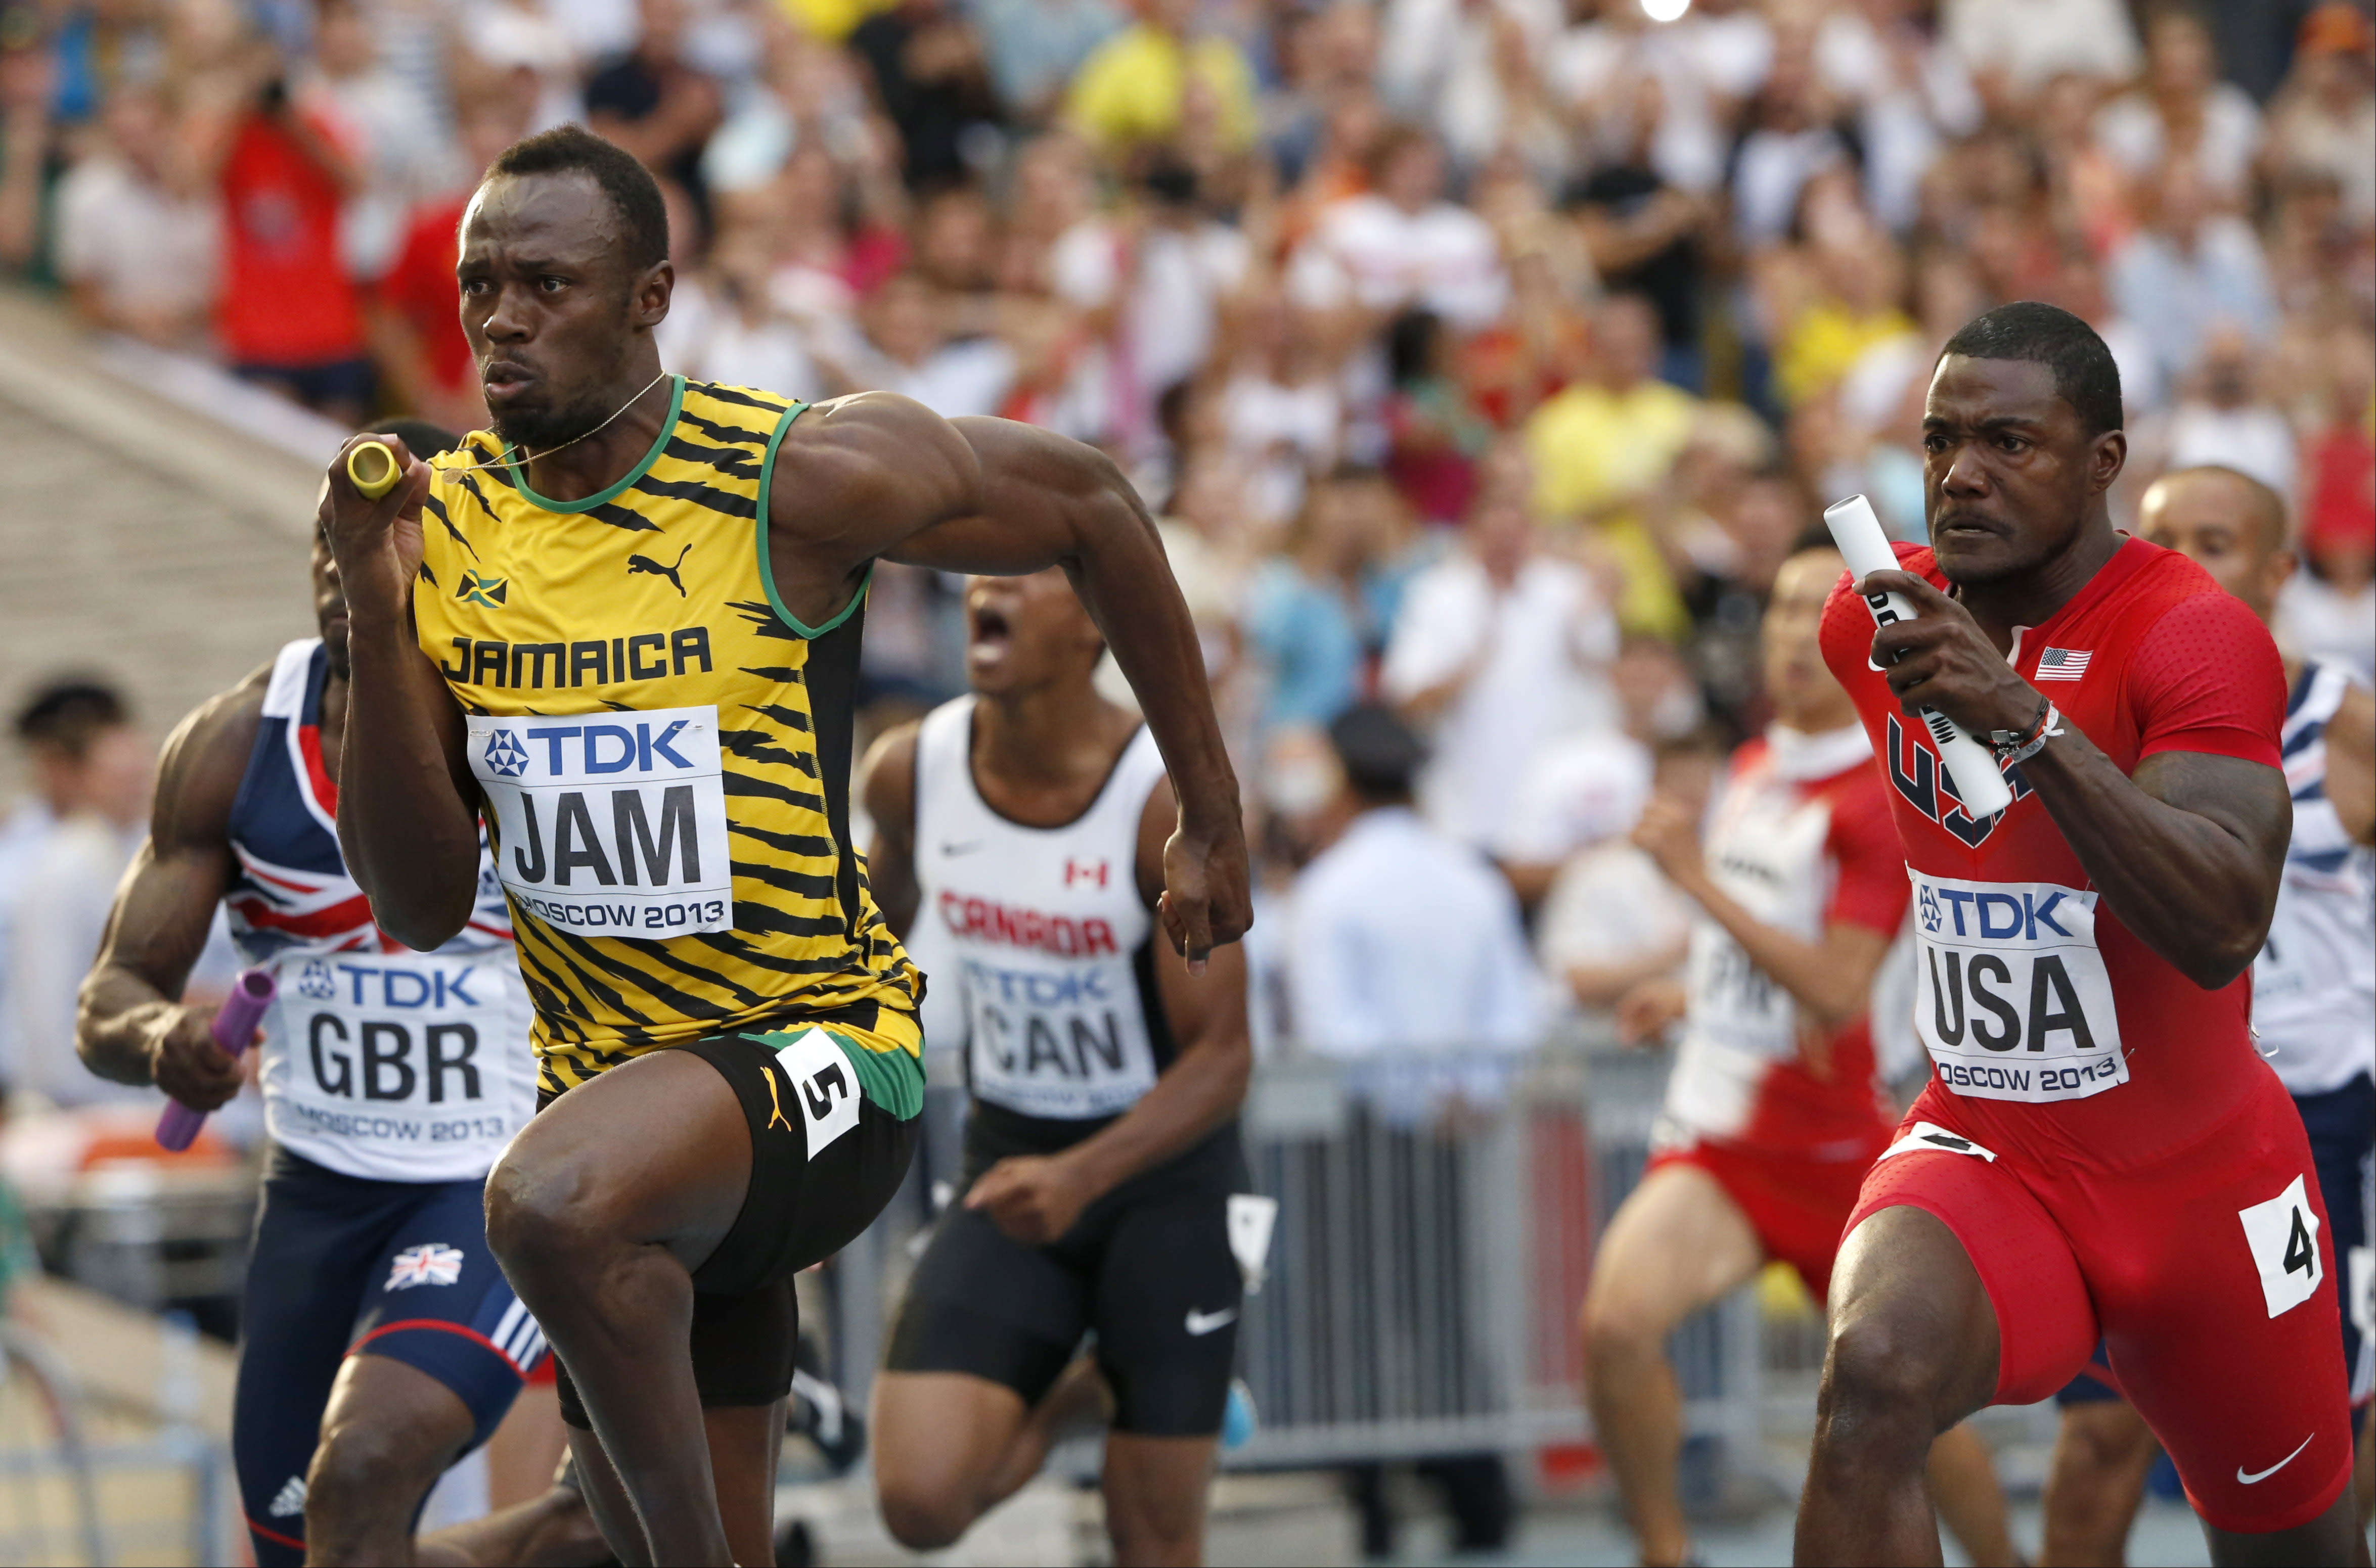 Usain Bolt getting back into shape ahead of worlds